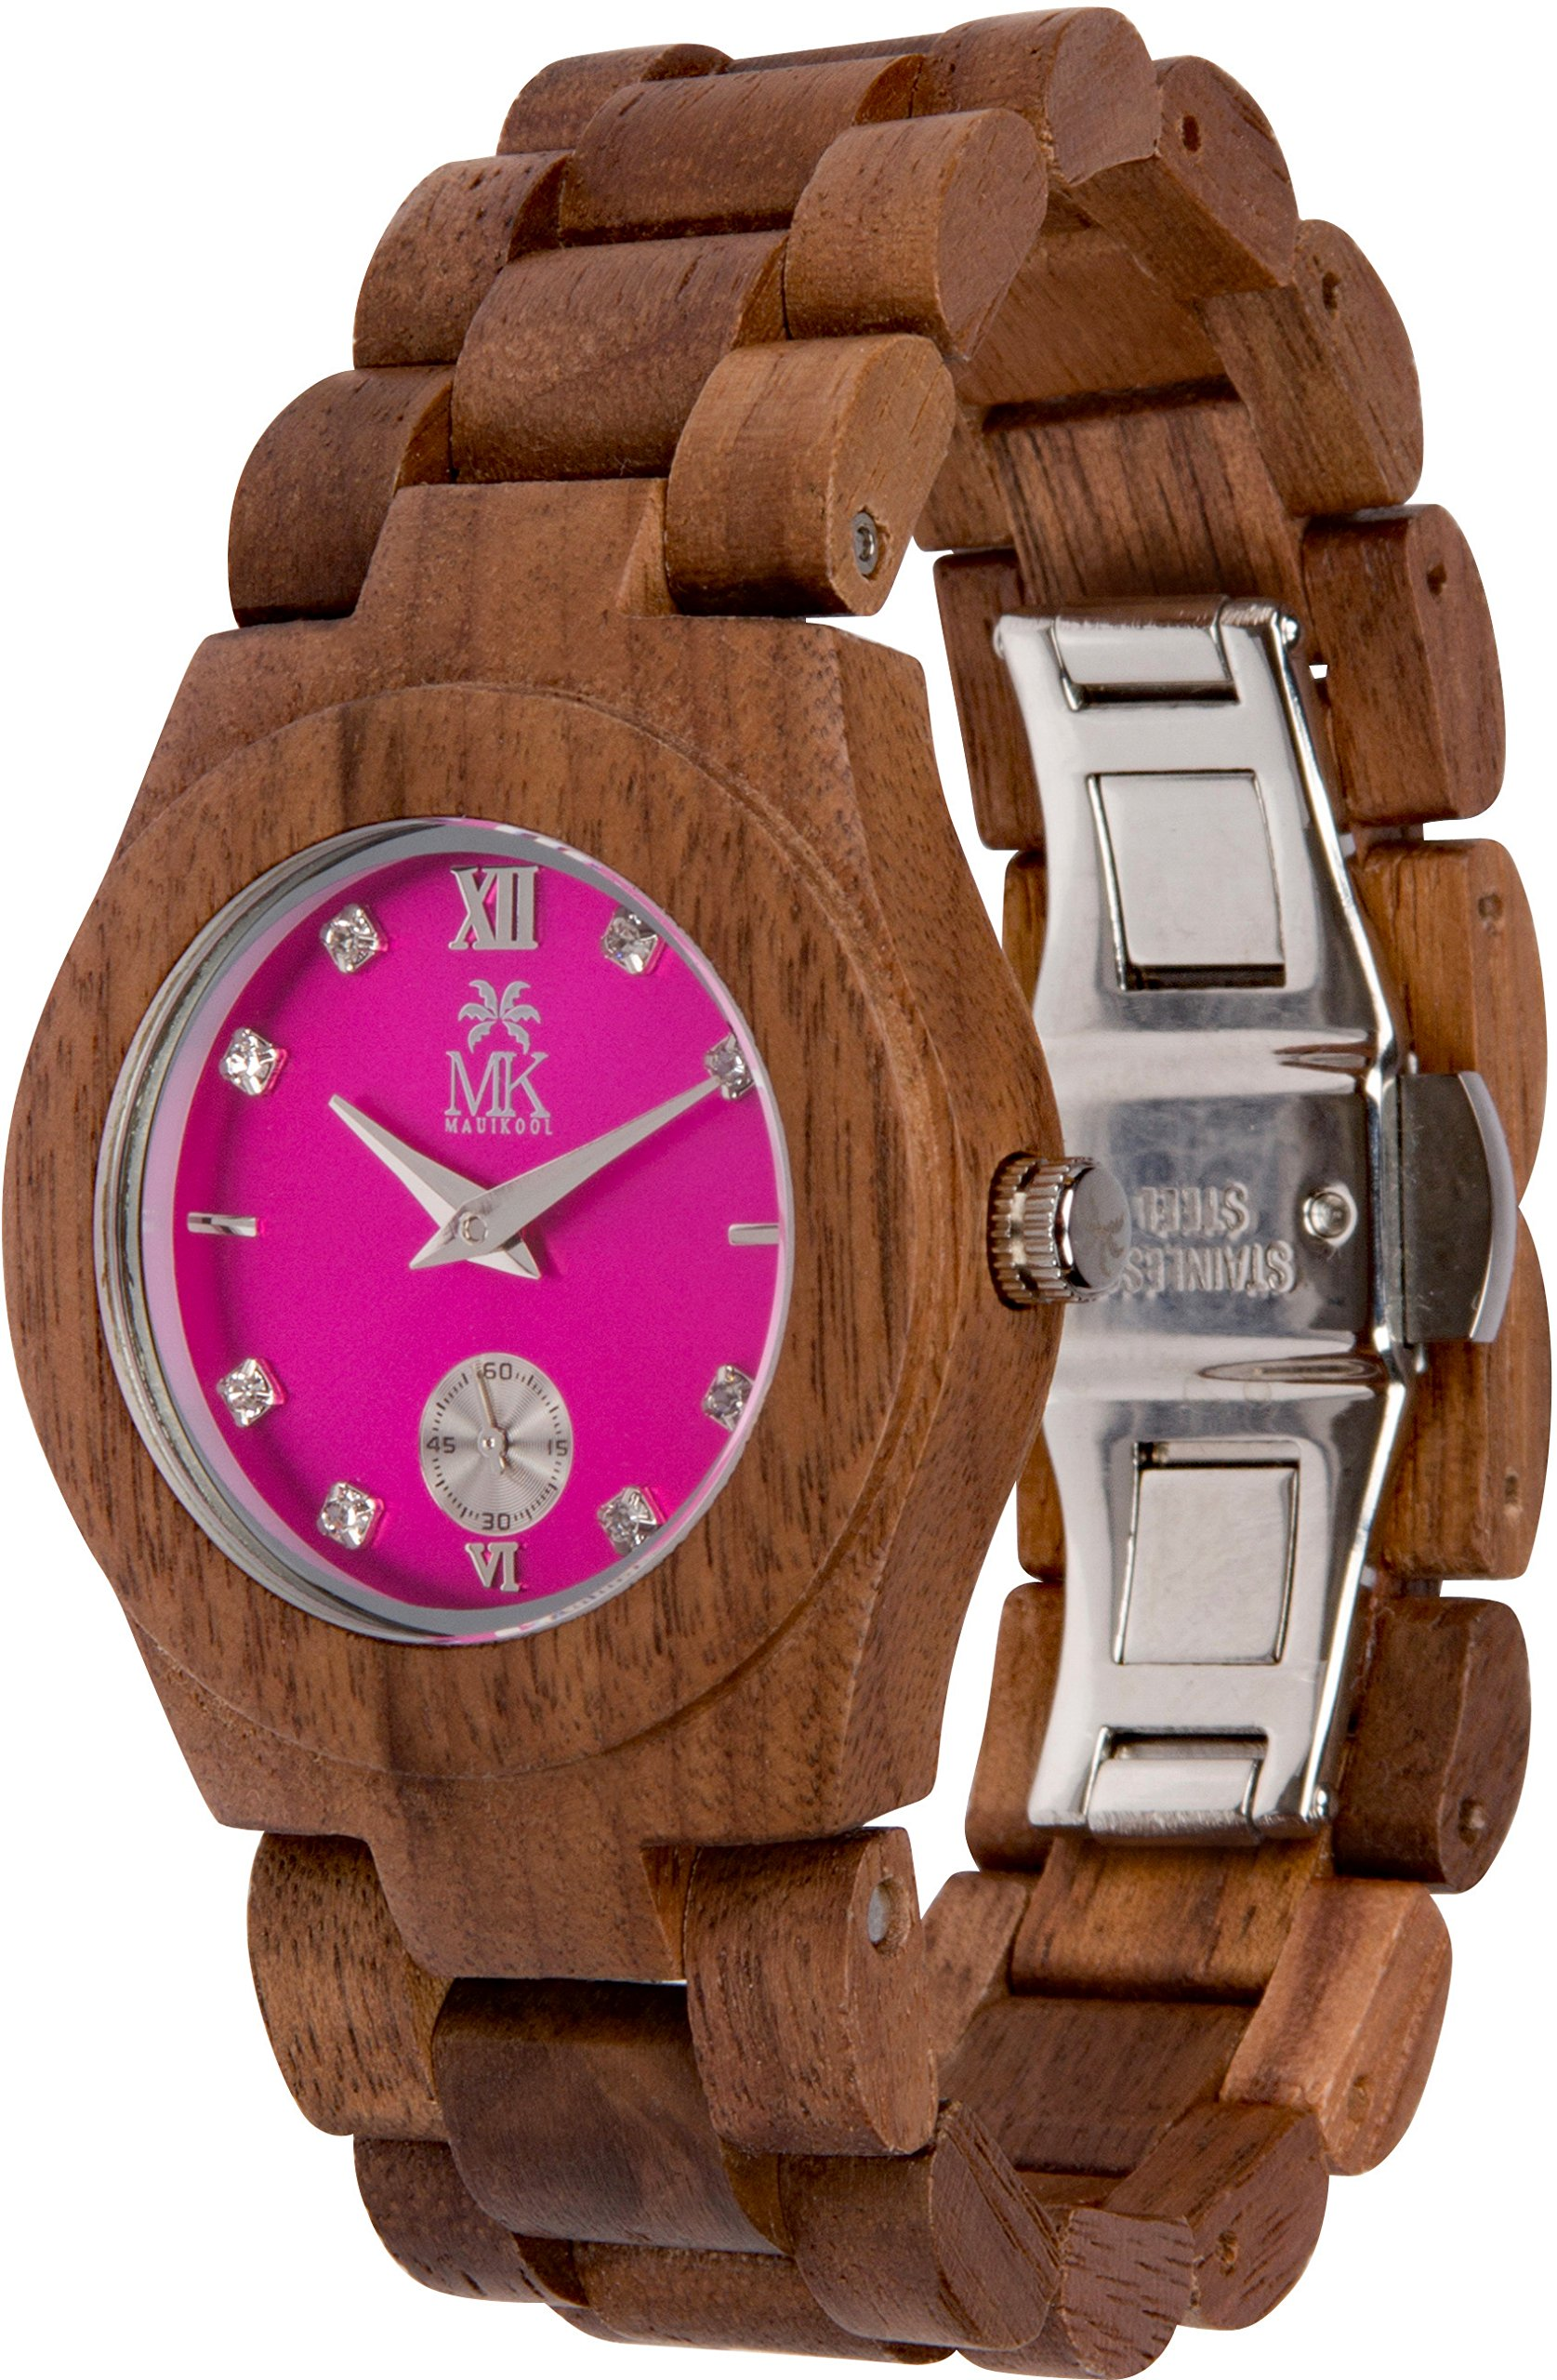 Maui Kool Wooden Watch Hana Collection for Women Analog Wood Watch Bamboo Gift Box (B5 - Walnut Fuchsia)